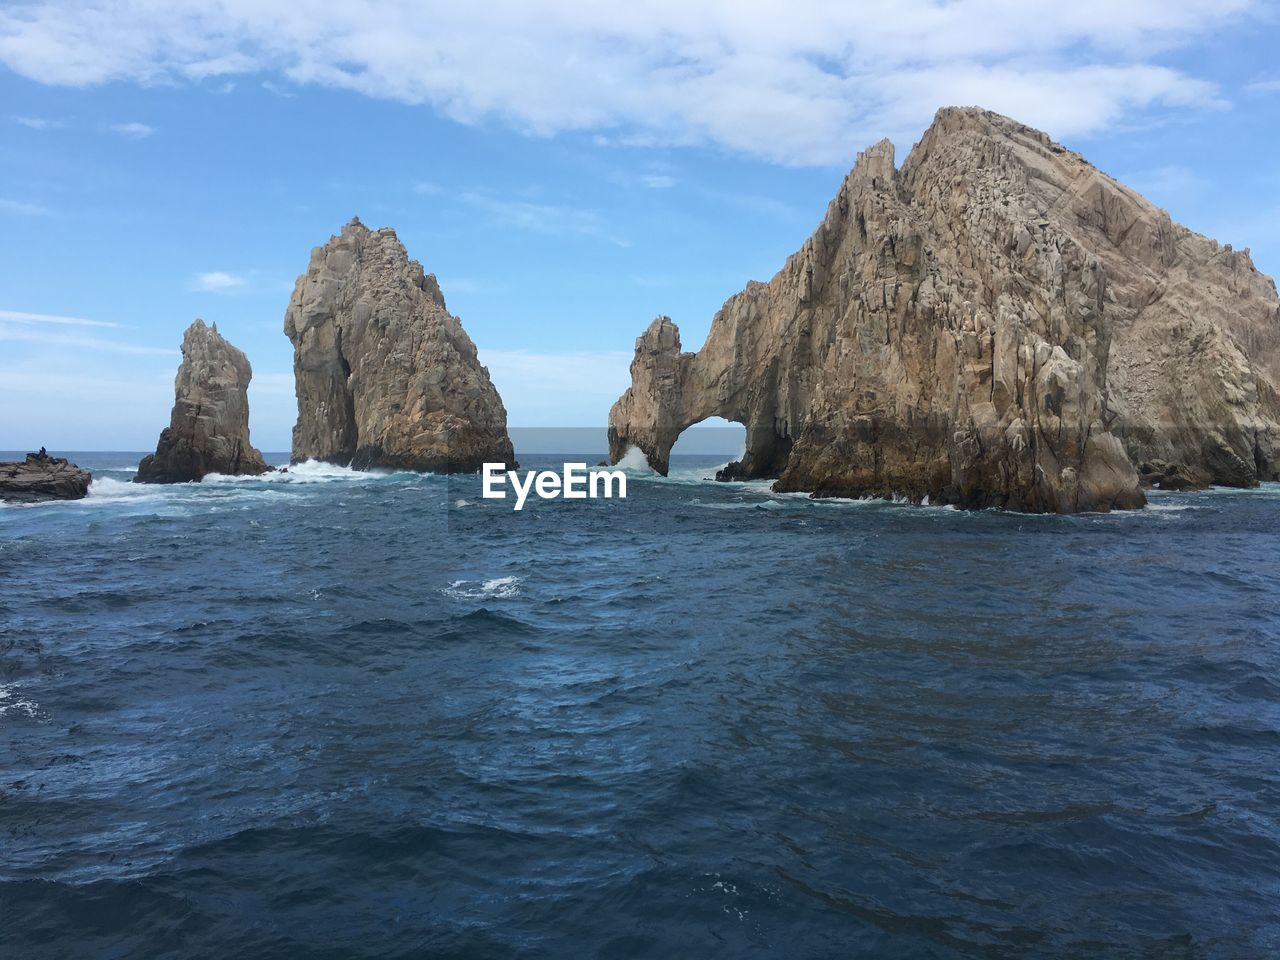 rock - object, sea, sky, nature, rock formation, tranquility, beauty in nature, scenics, tranquil scene, water, day, outdoors, cloud - sky, no people, iceberg